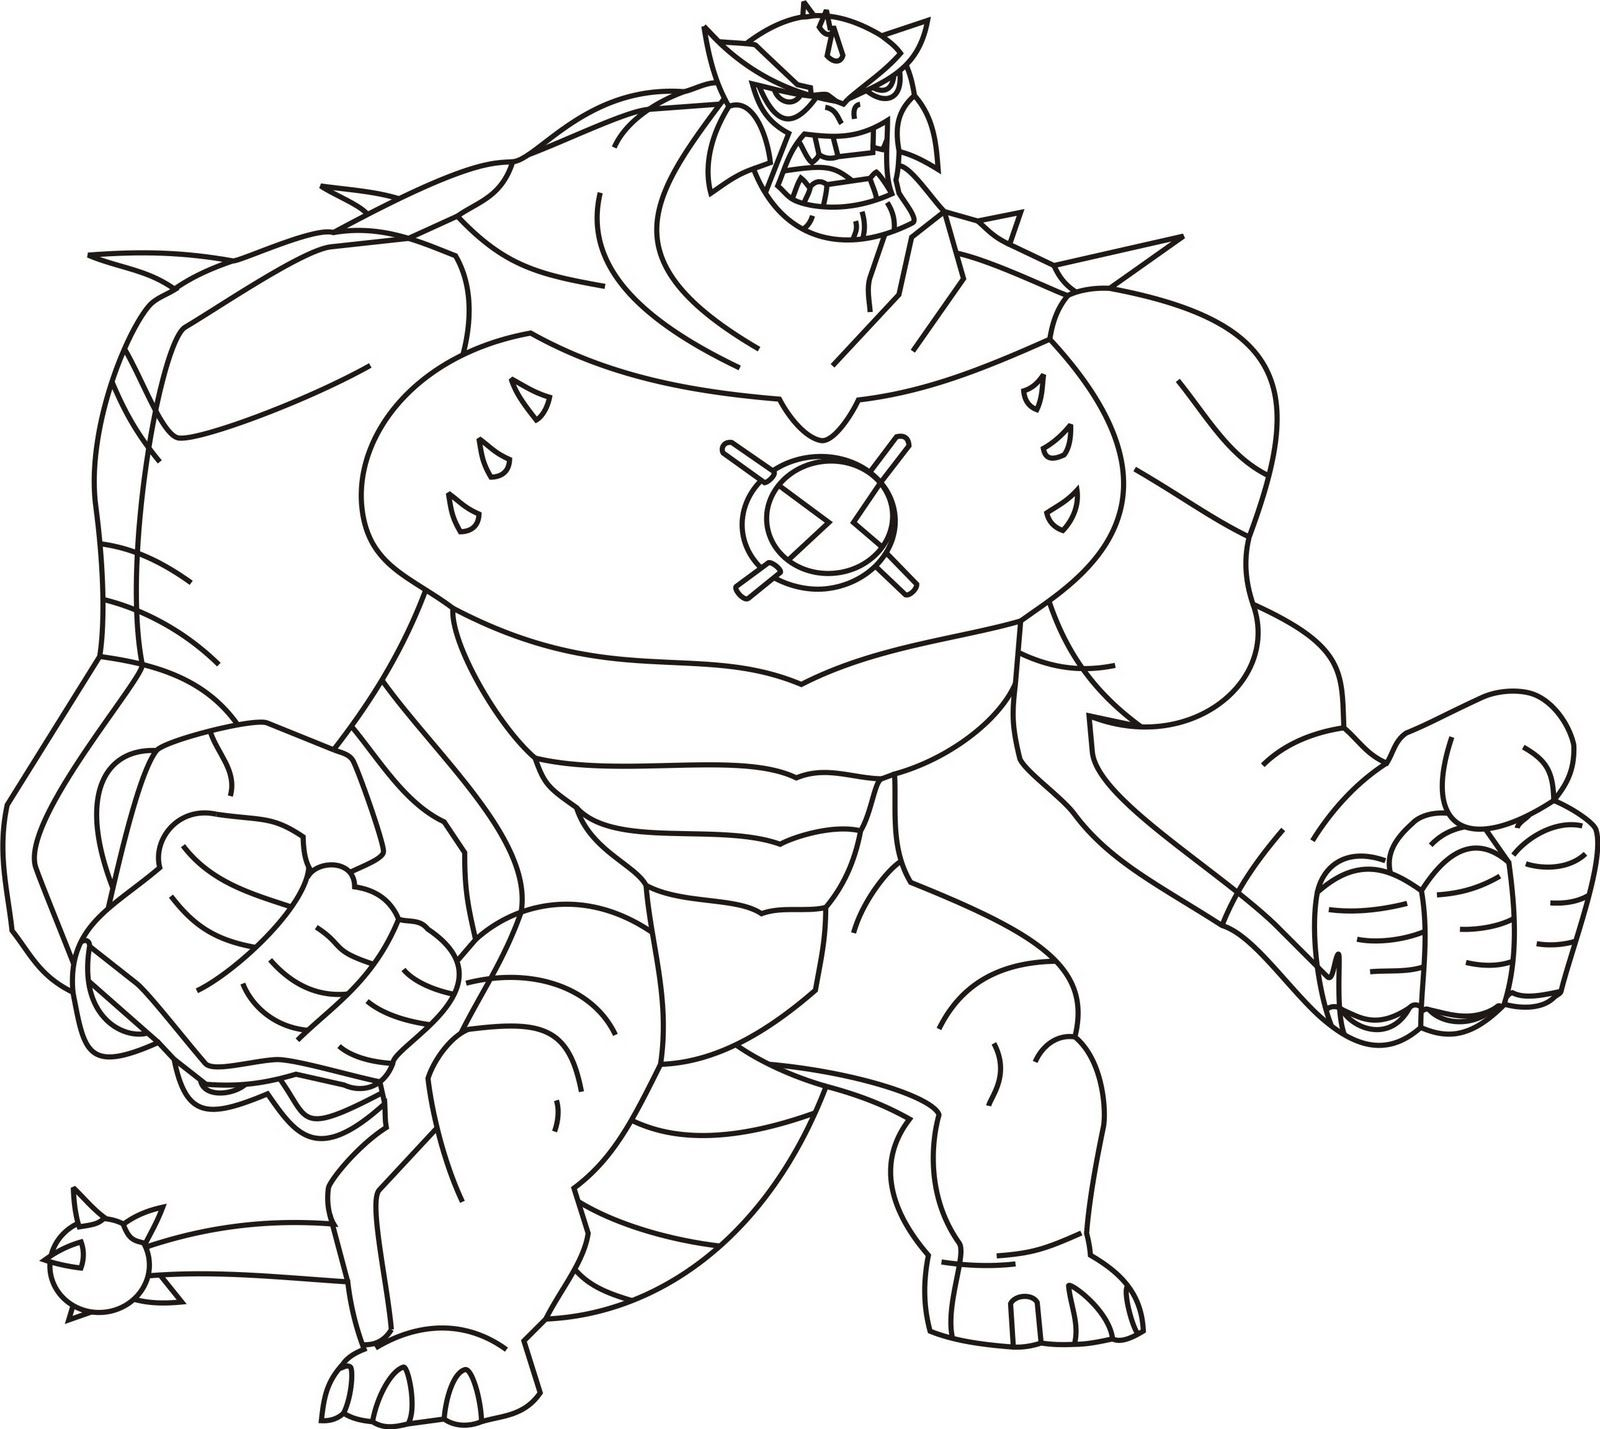 ben 10 coloring pages ultimate aliens | WisCon coloring ...